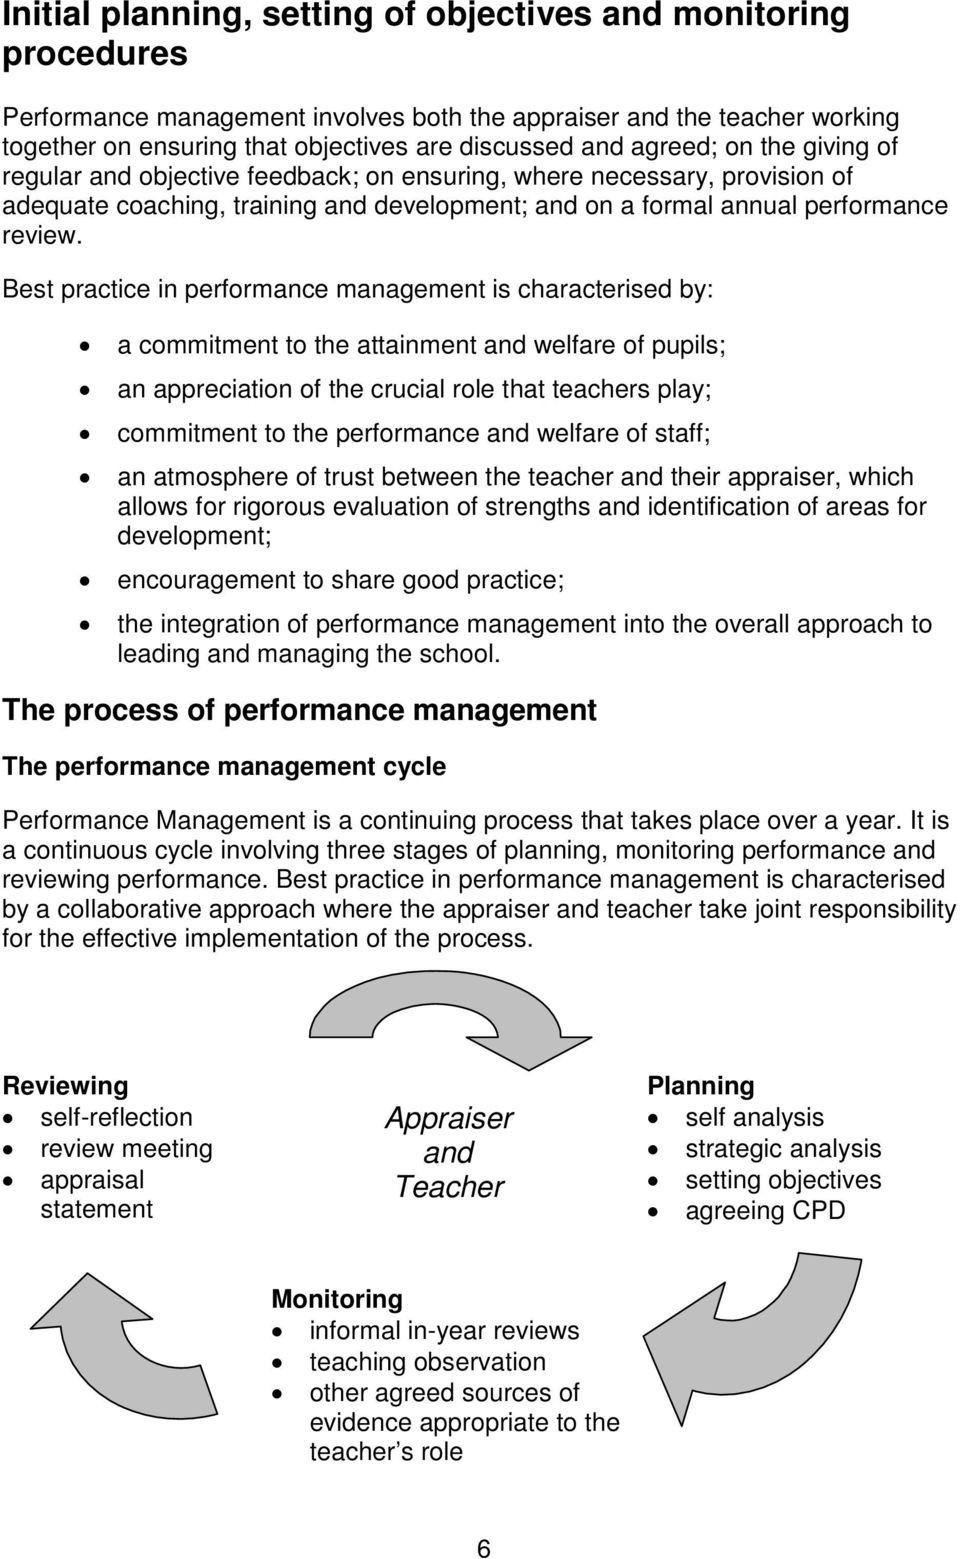 Best practice in performance management is characterised by: a commitment to the attainment and welfare of pupils; an appreciation of the crucial role that teachers play; commitment to the